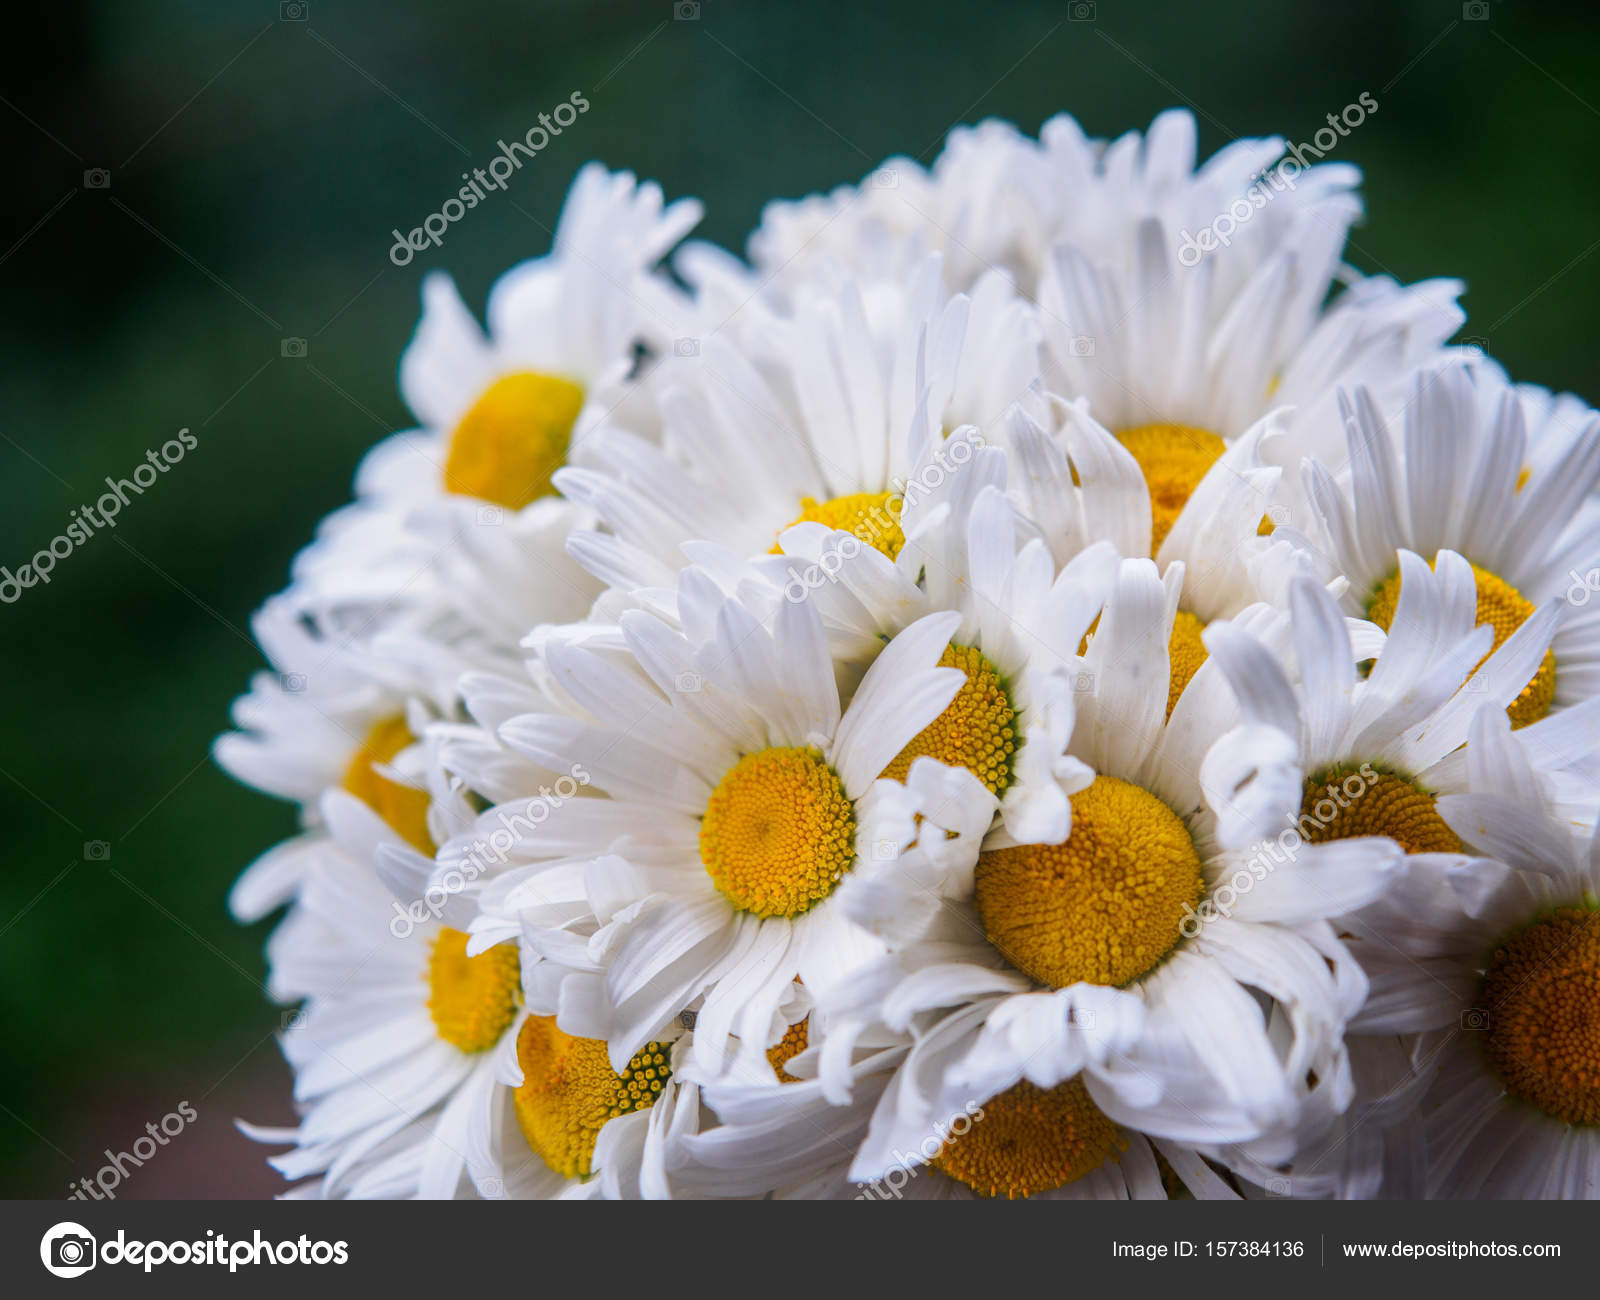 A bouquet of white field daisies on a green blurred background a bouquet of white field daisies on a green blurred background flowers with white petals and yellow pistils close up photographed with a soft focus mightylinksfo